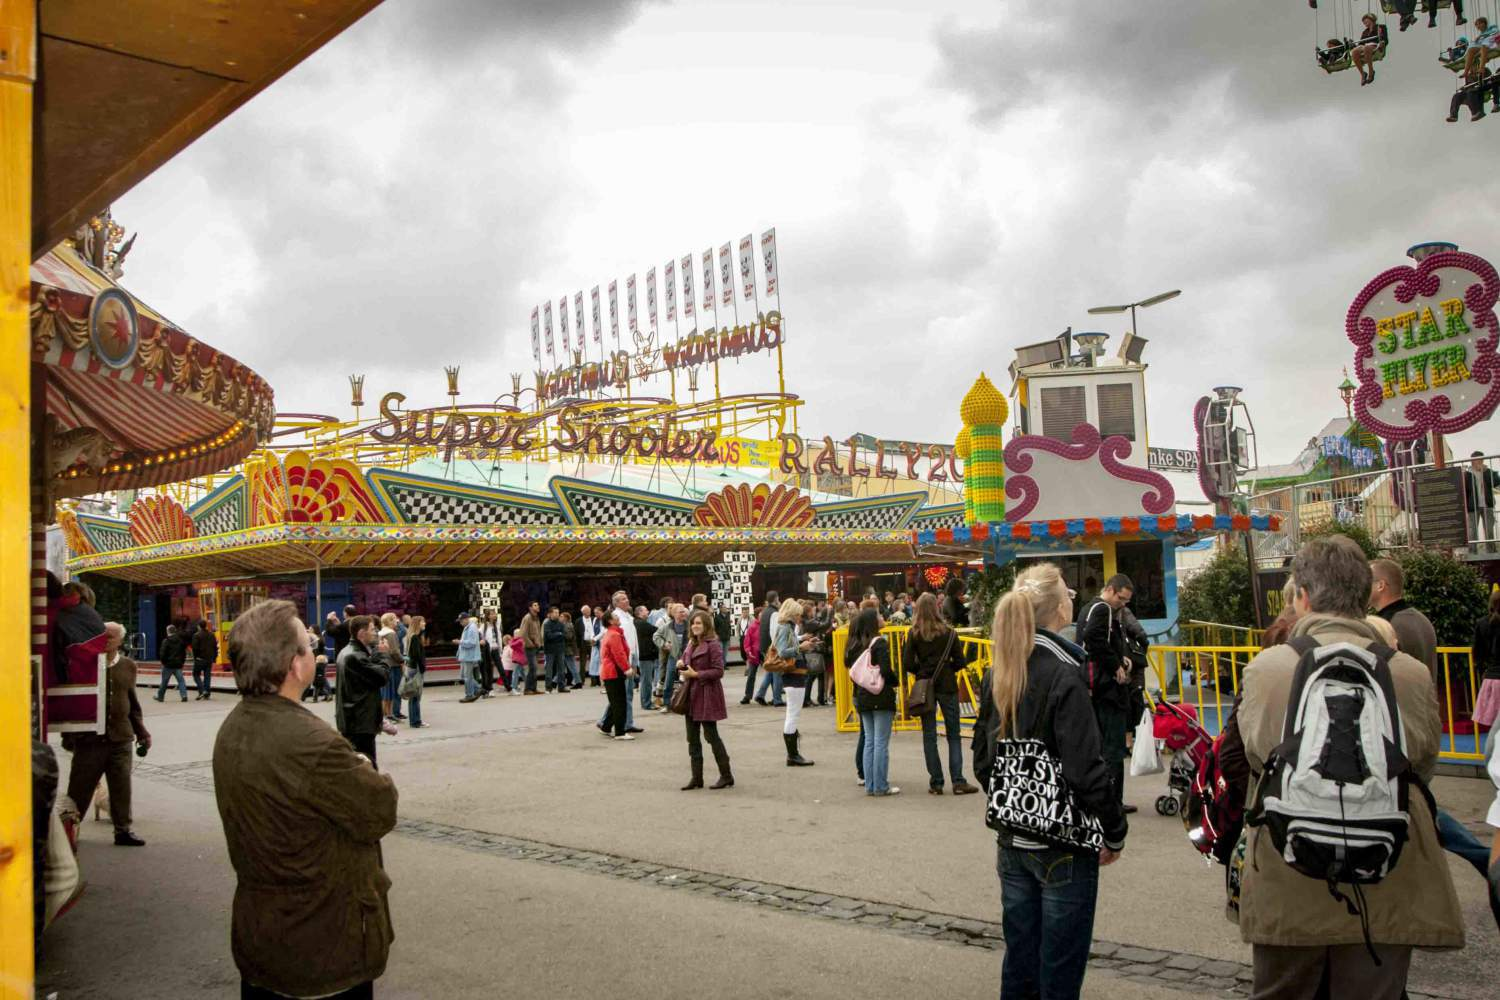 Munich's attraction park during the Oktoberfest